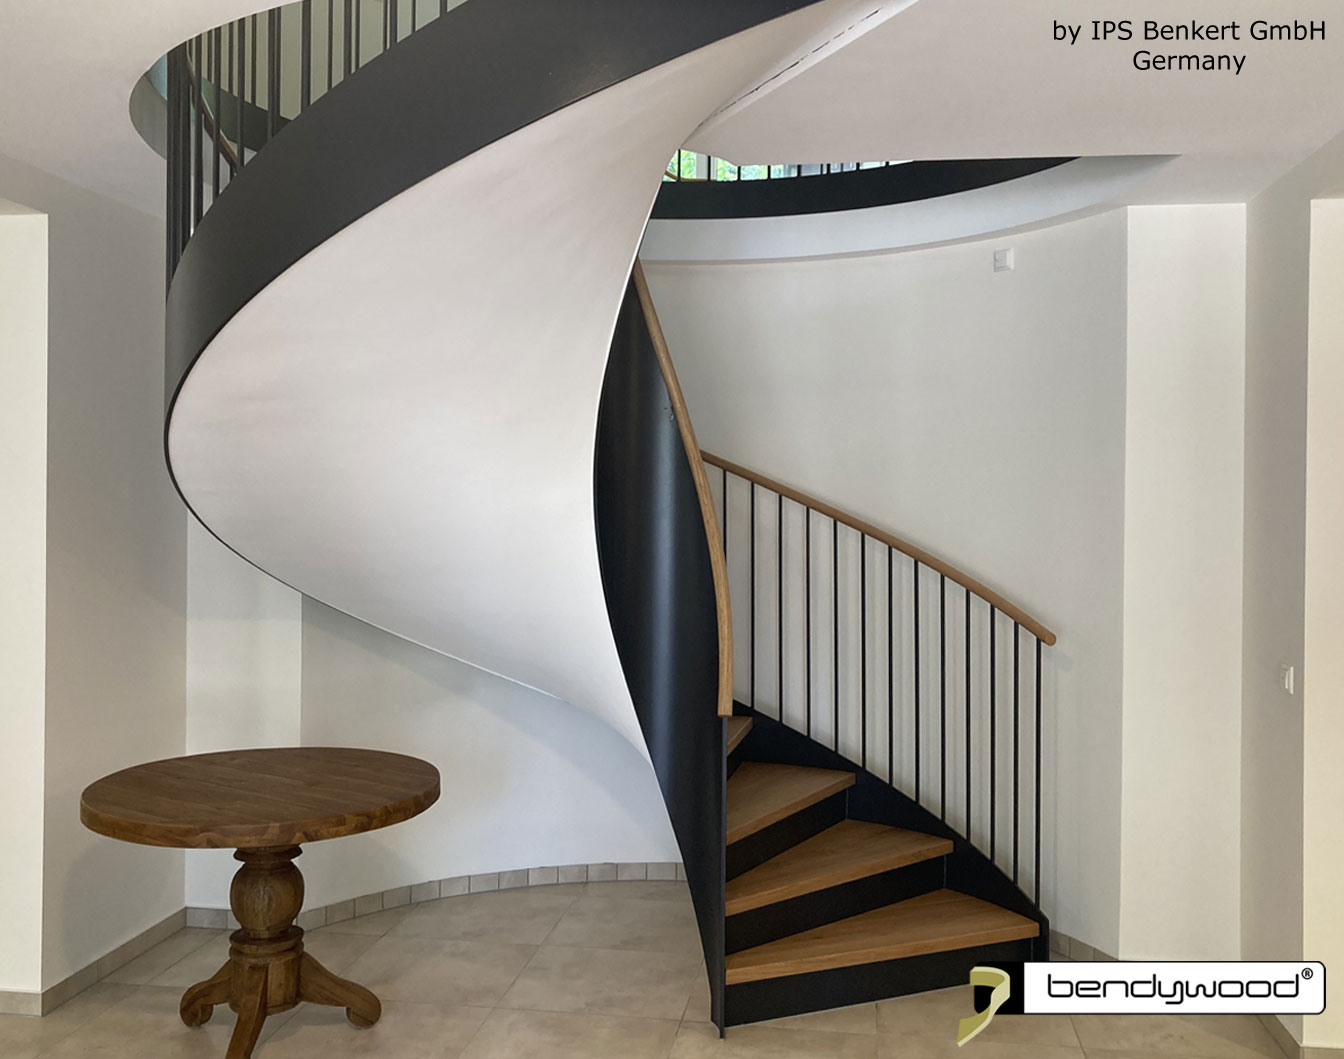 Bending wood Bendywood® - Curved solid wooden handrail for staircase